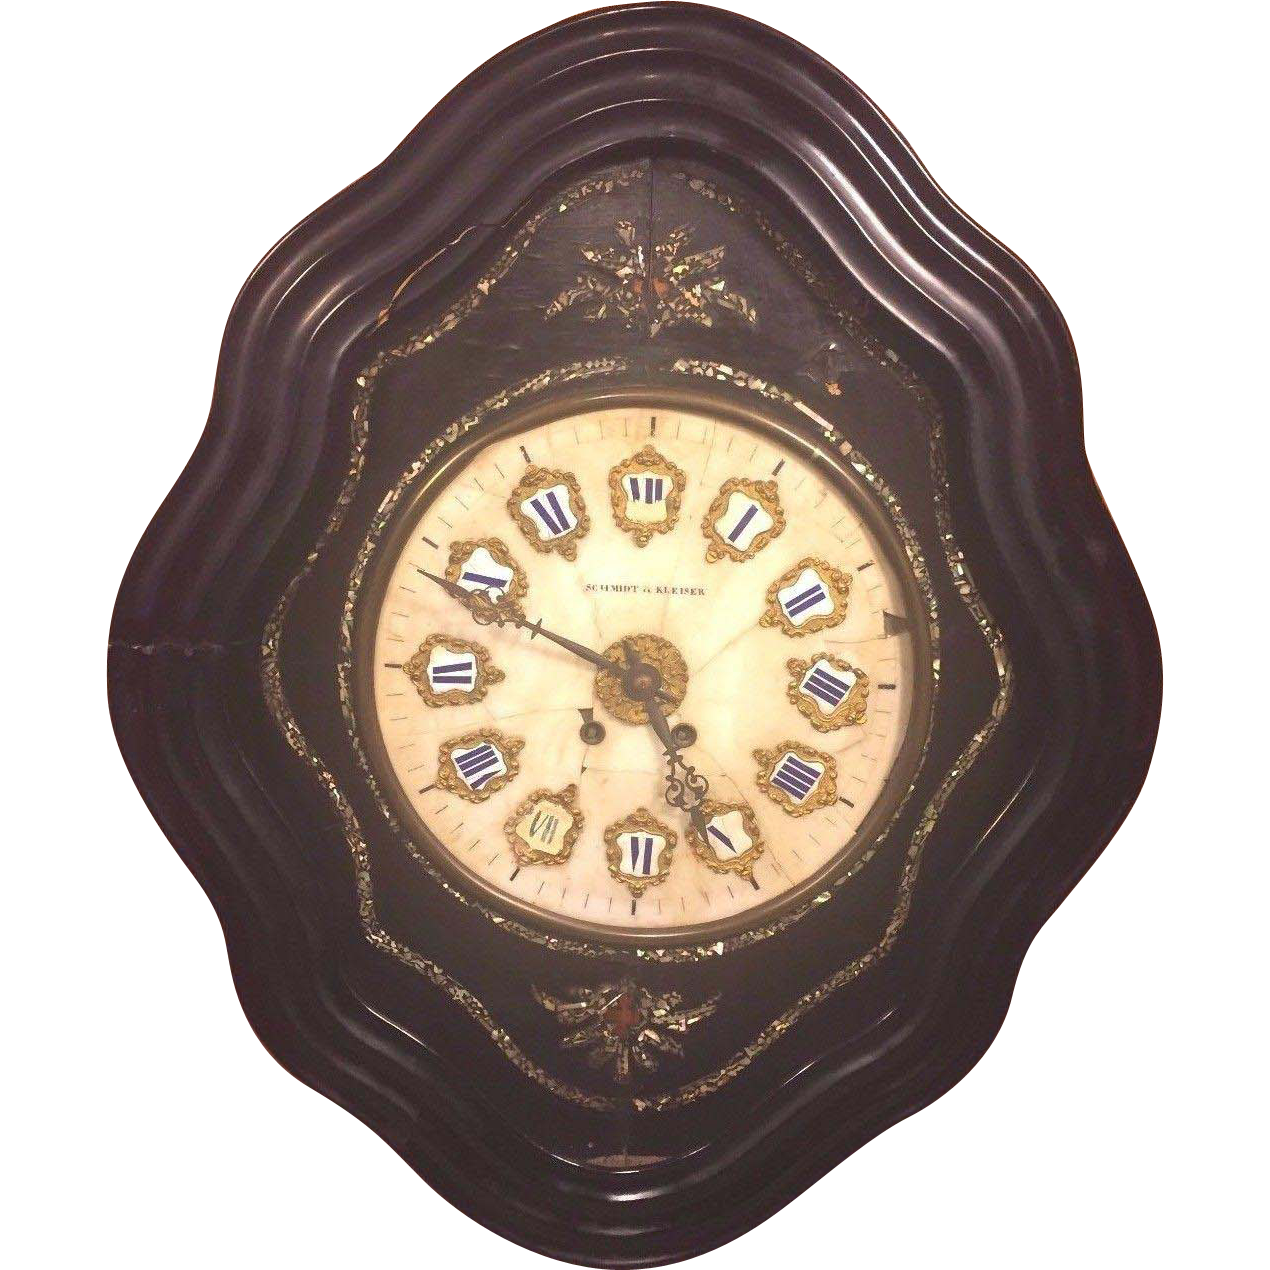 Large Clock Face Part - 31: Antique French Boulle Wall Clock Black Ebonized Case With Stone Face Not  Running Schmidt U0026 Kleiser